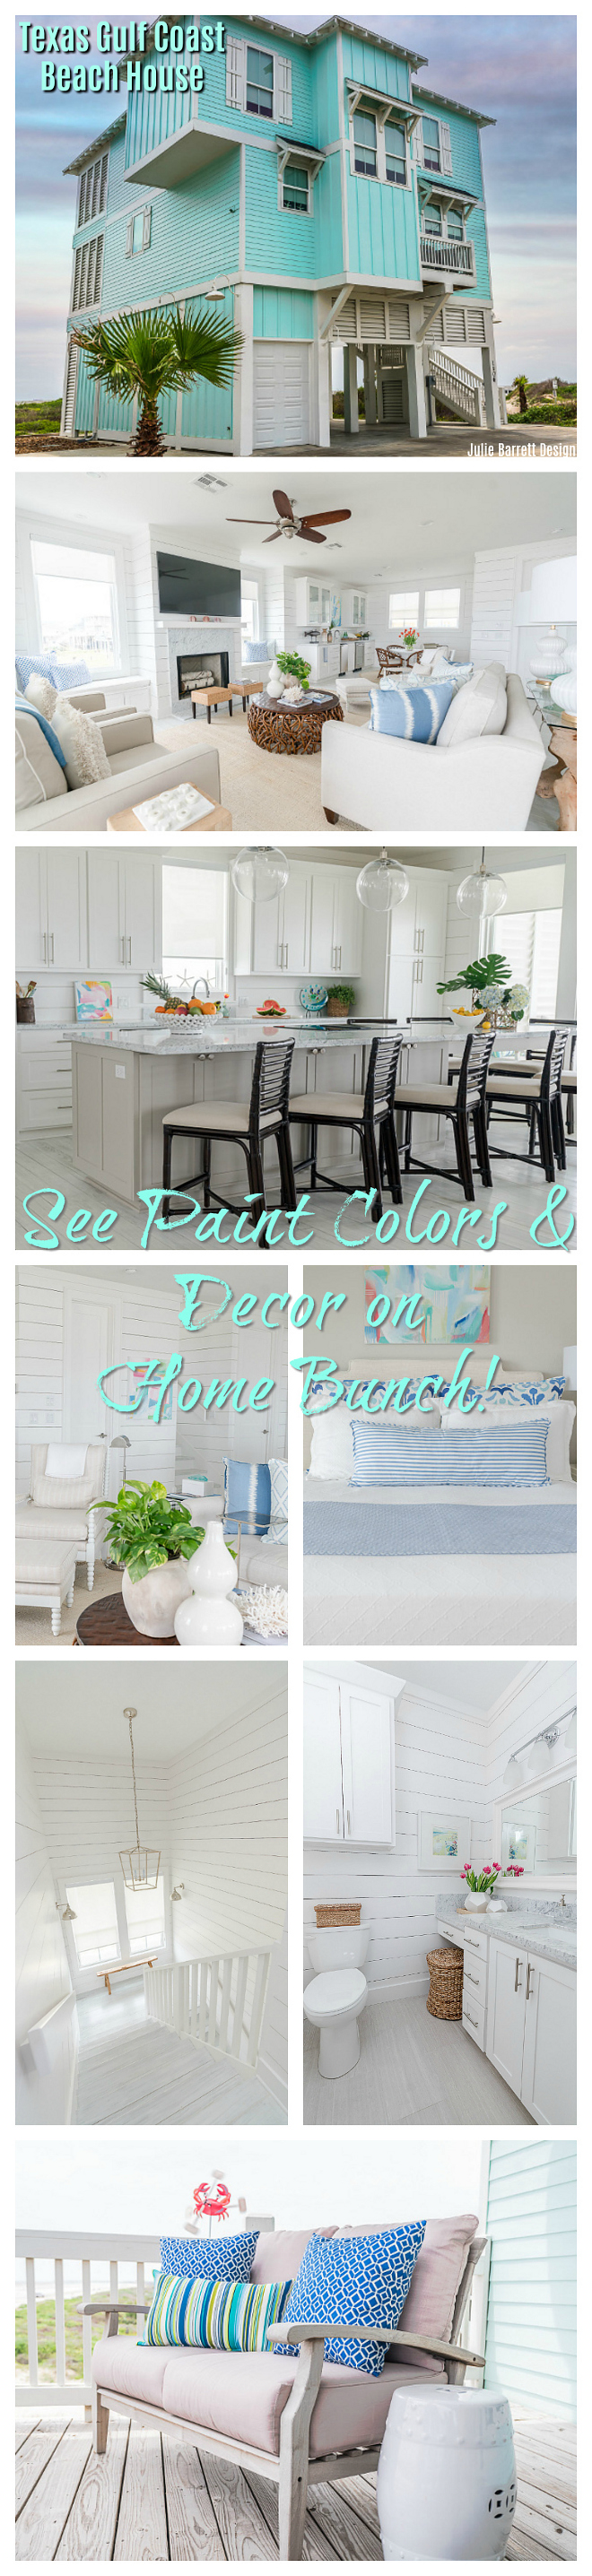 Texas Gulf Coast Beach House Texas Gulf Coast Beach House Texas Gulf Coast Beach House Decor and Paint Color on Home Bunch Texas Gulf Coast Beach House Texas Gulf Coast Beach House Texas Gulf Coast Beach House #TexasGulfCoast #BeachHouse